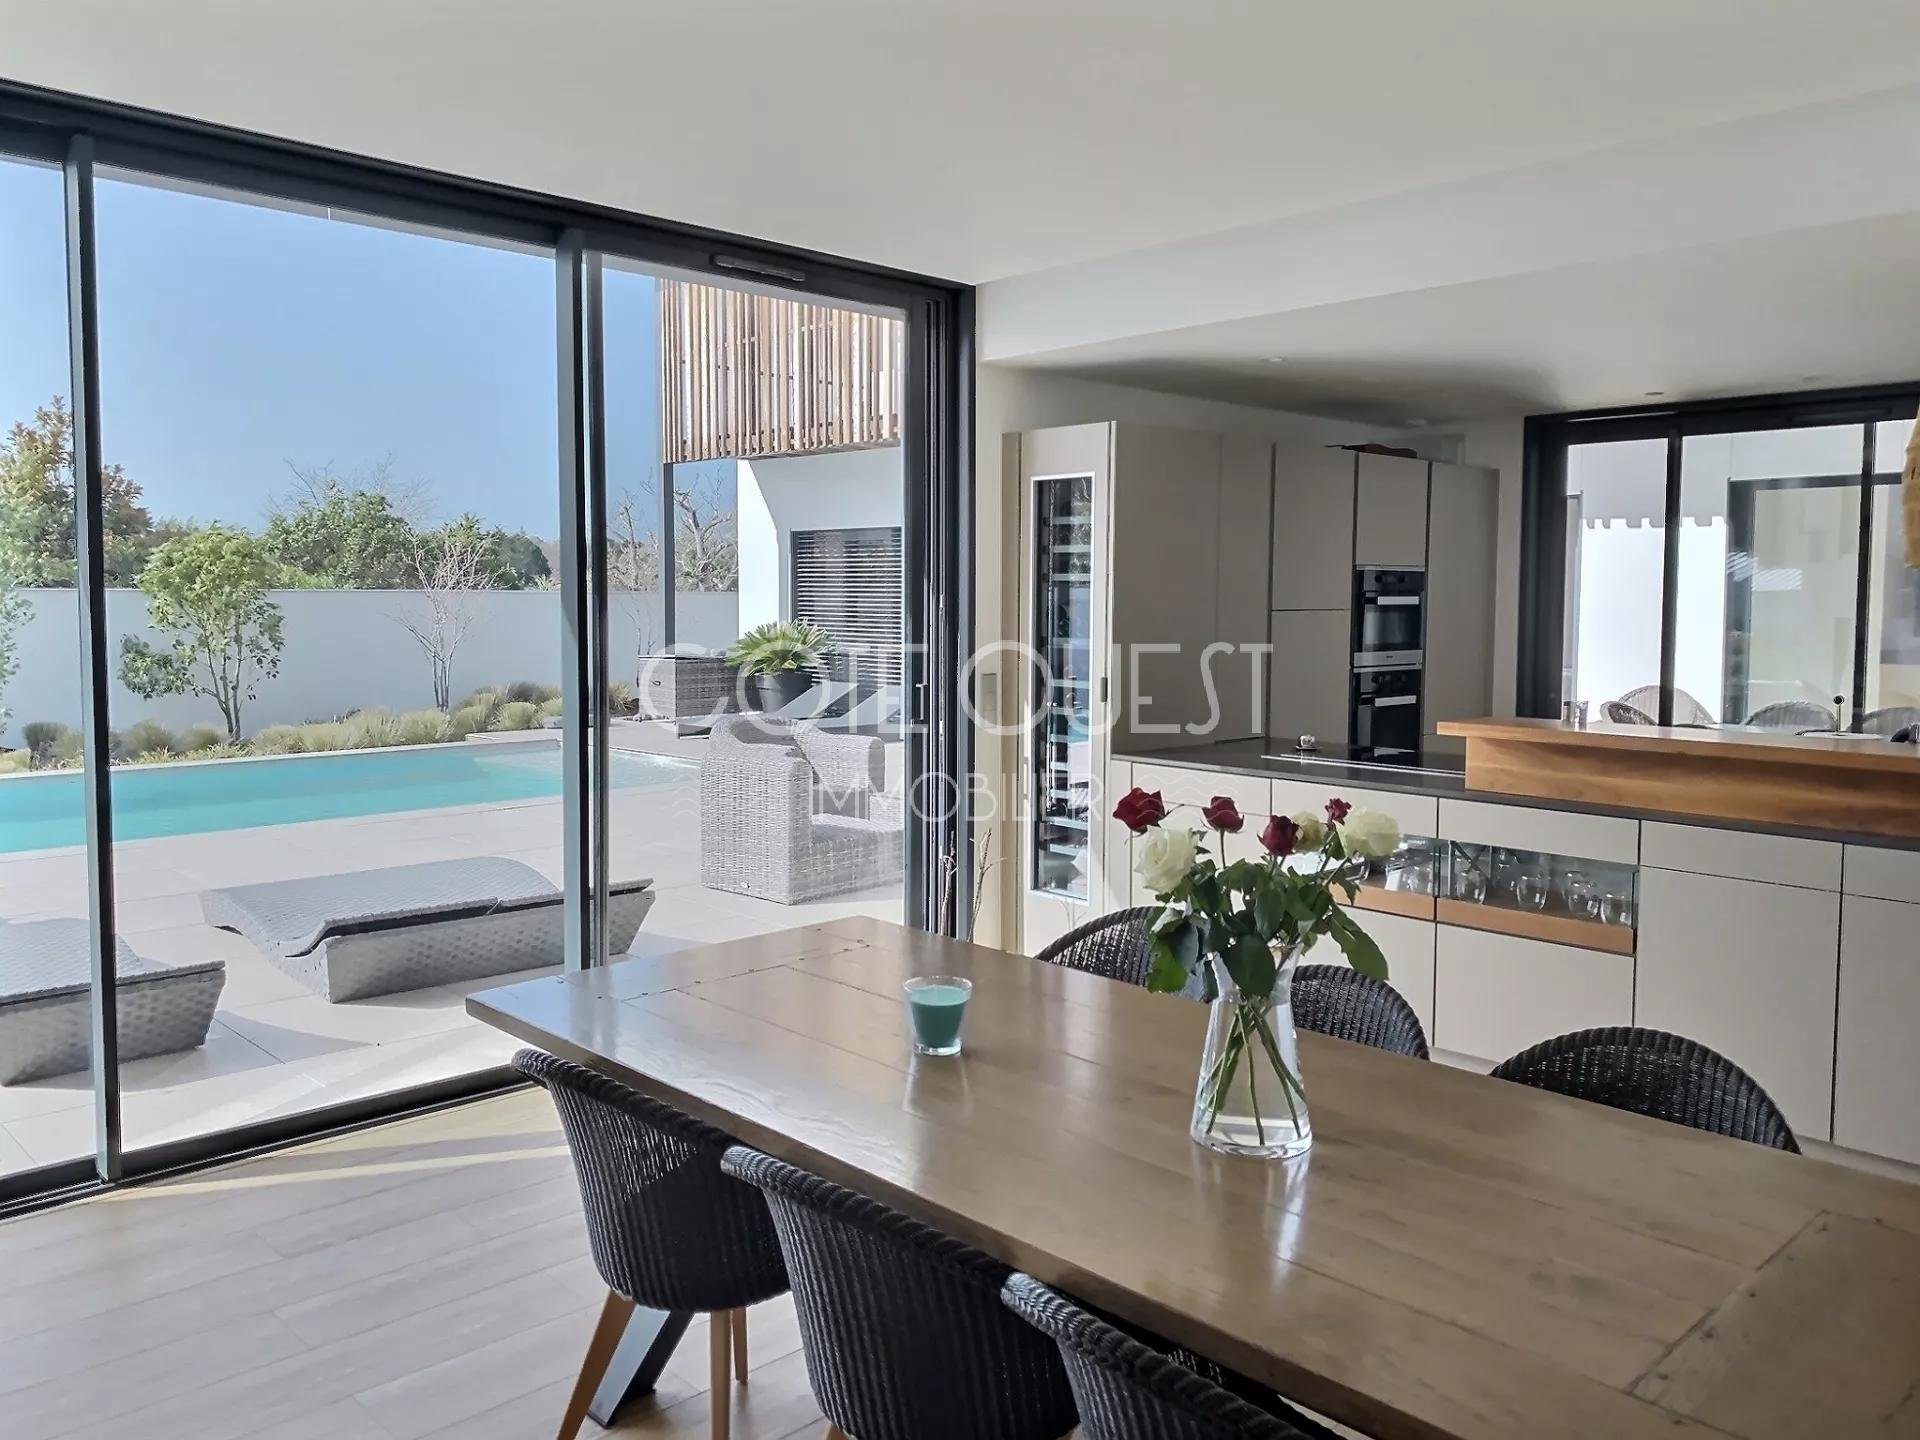 BIARRITZ – A CONTEMPORARY VILLA WITH A SWIMMING POOL